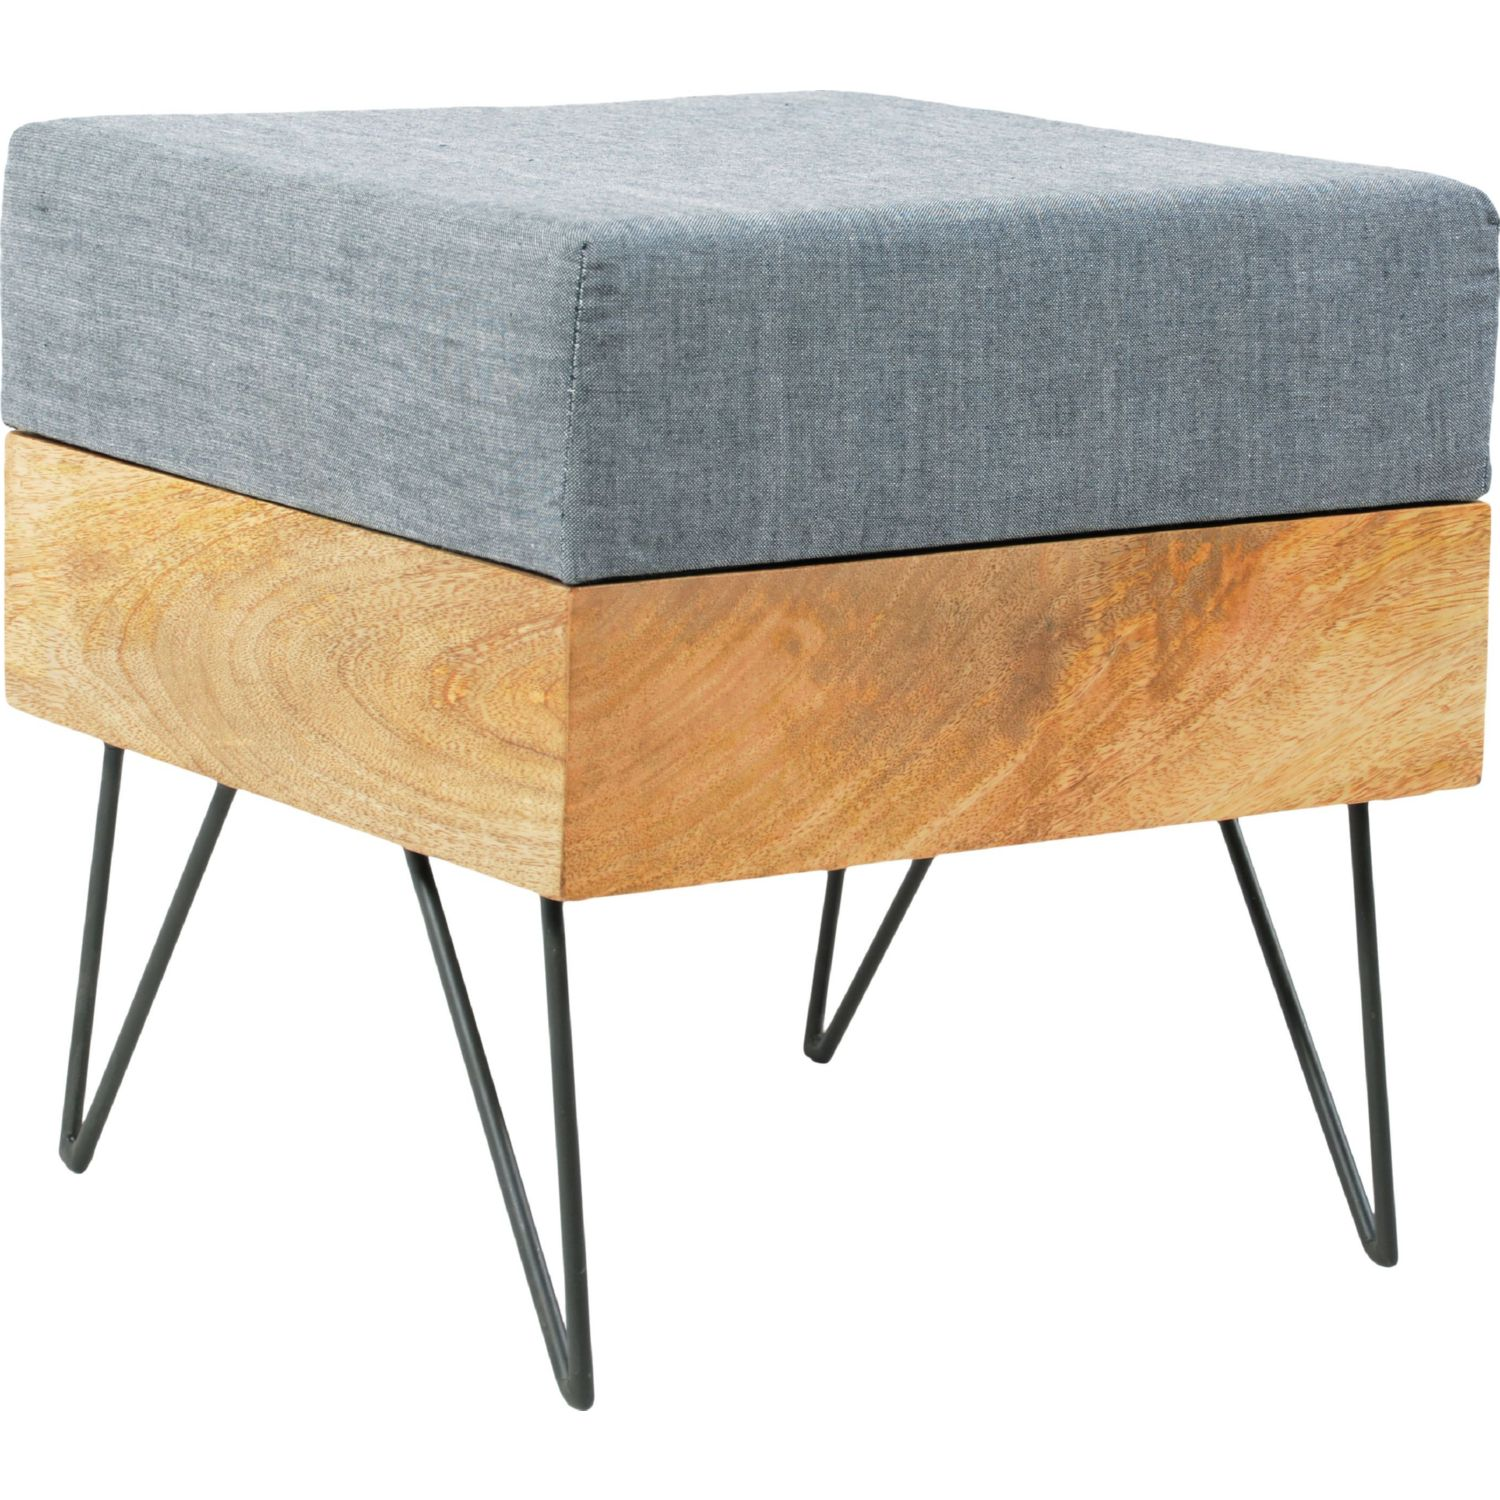 Moe s Home Collection Pouf Square Ottoman in Natural Linen Cotton Fabric on  Metal Legs. Moe s Home Collection BZ 1026 24 Pouf Square Ottoman in Natural